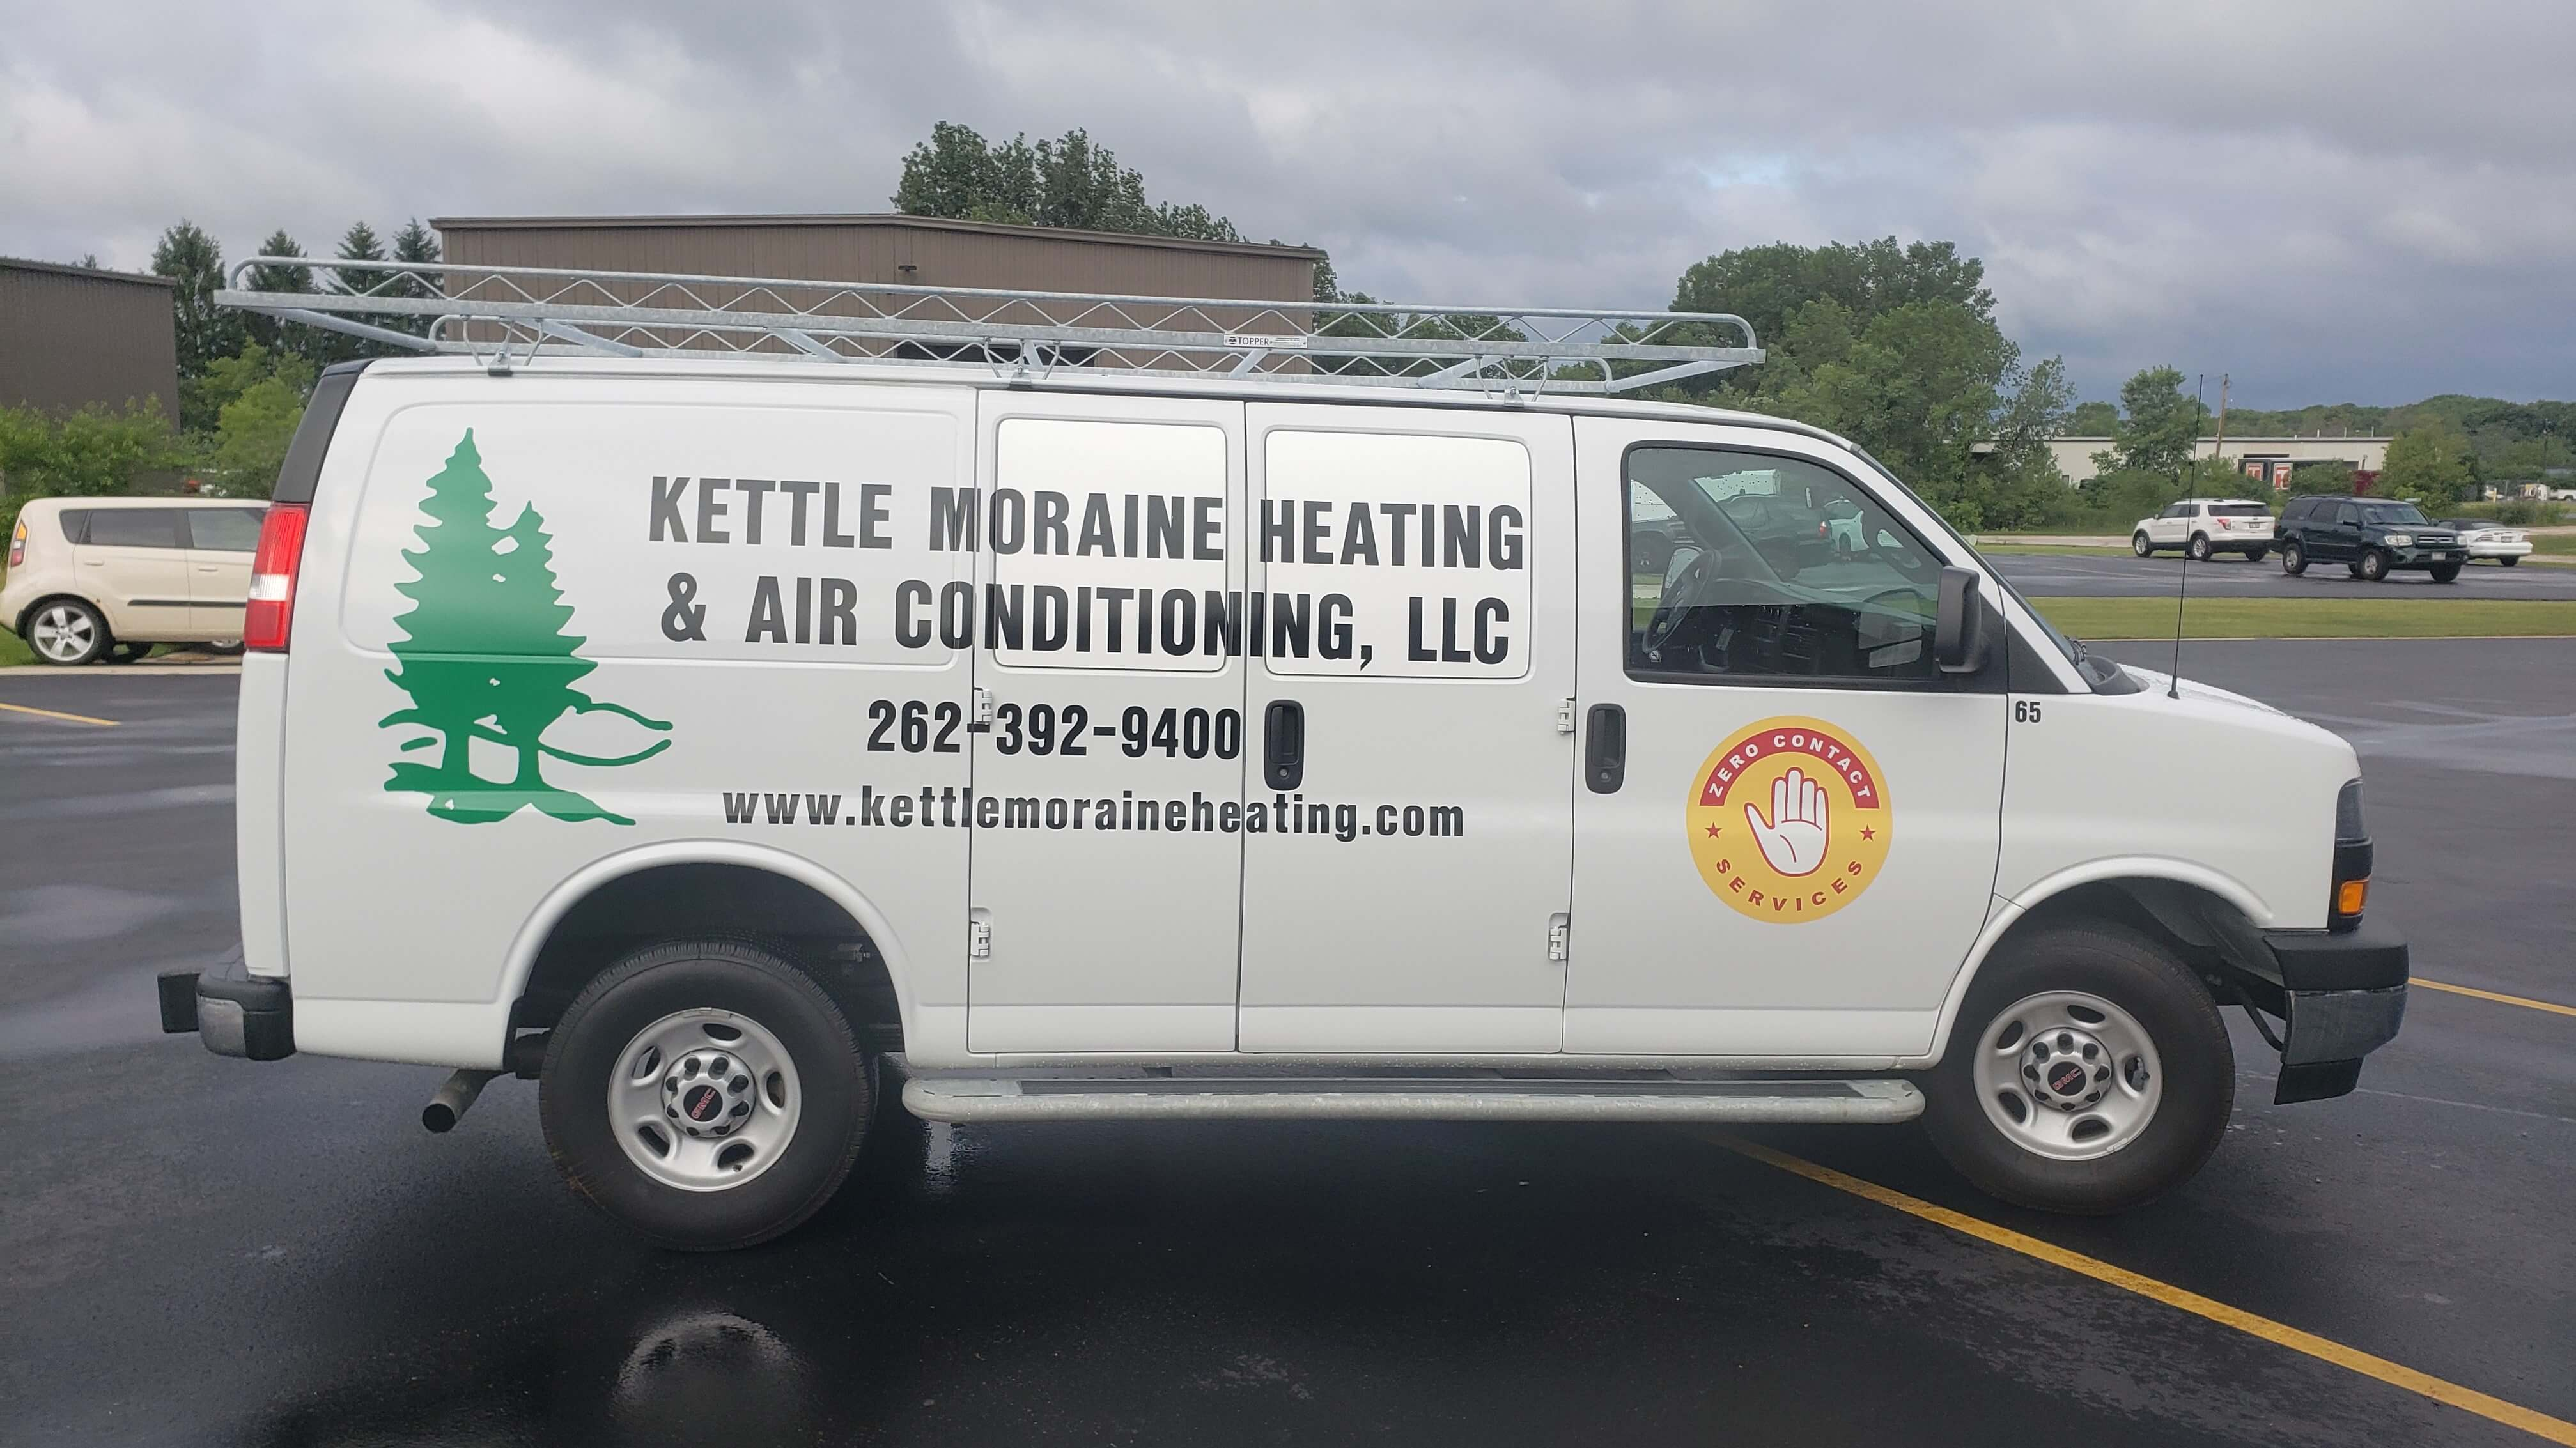 Kettle Moraine Heating and Air Conditioning Service Van Spot Graphics